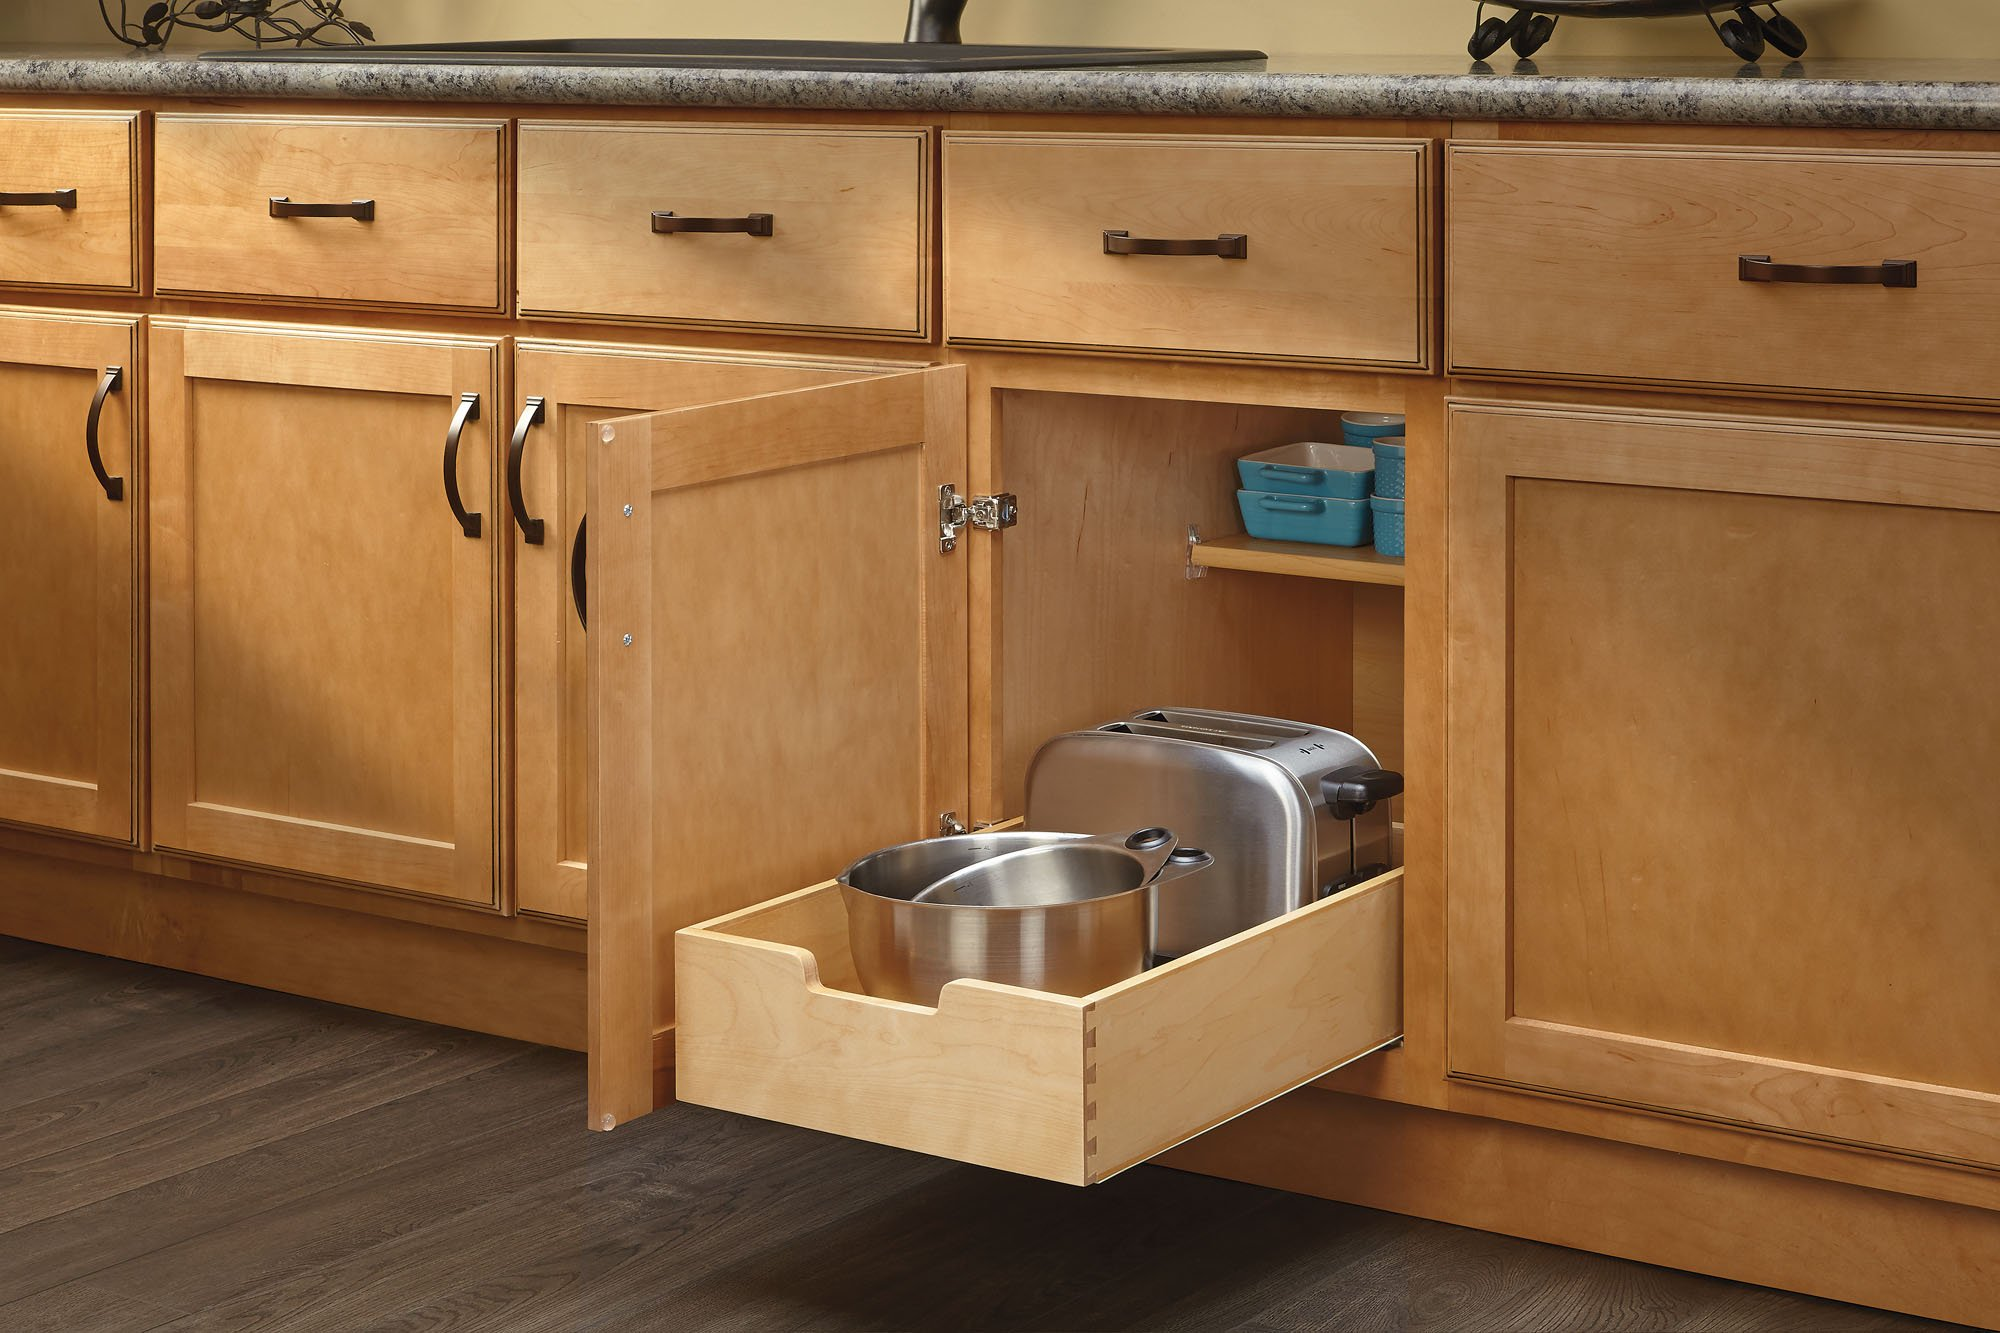 Medium Wood Base Cabinet Pull-Out